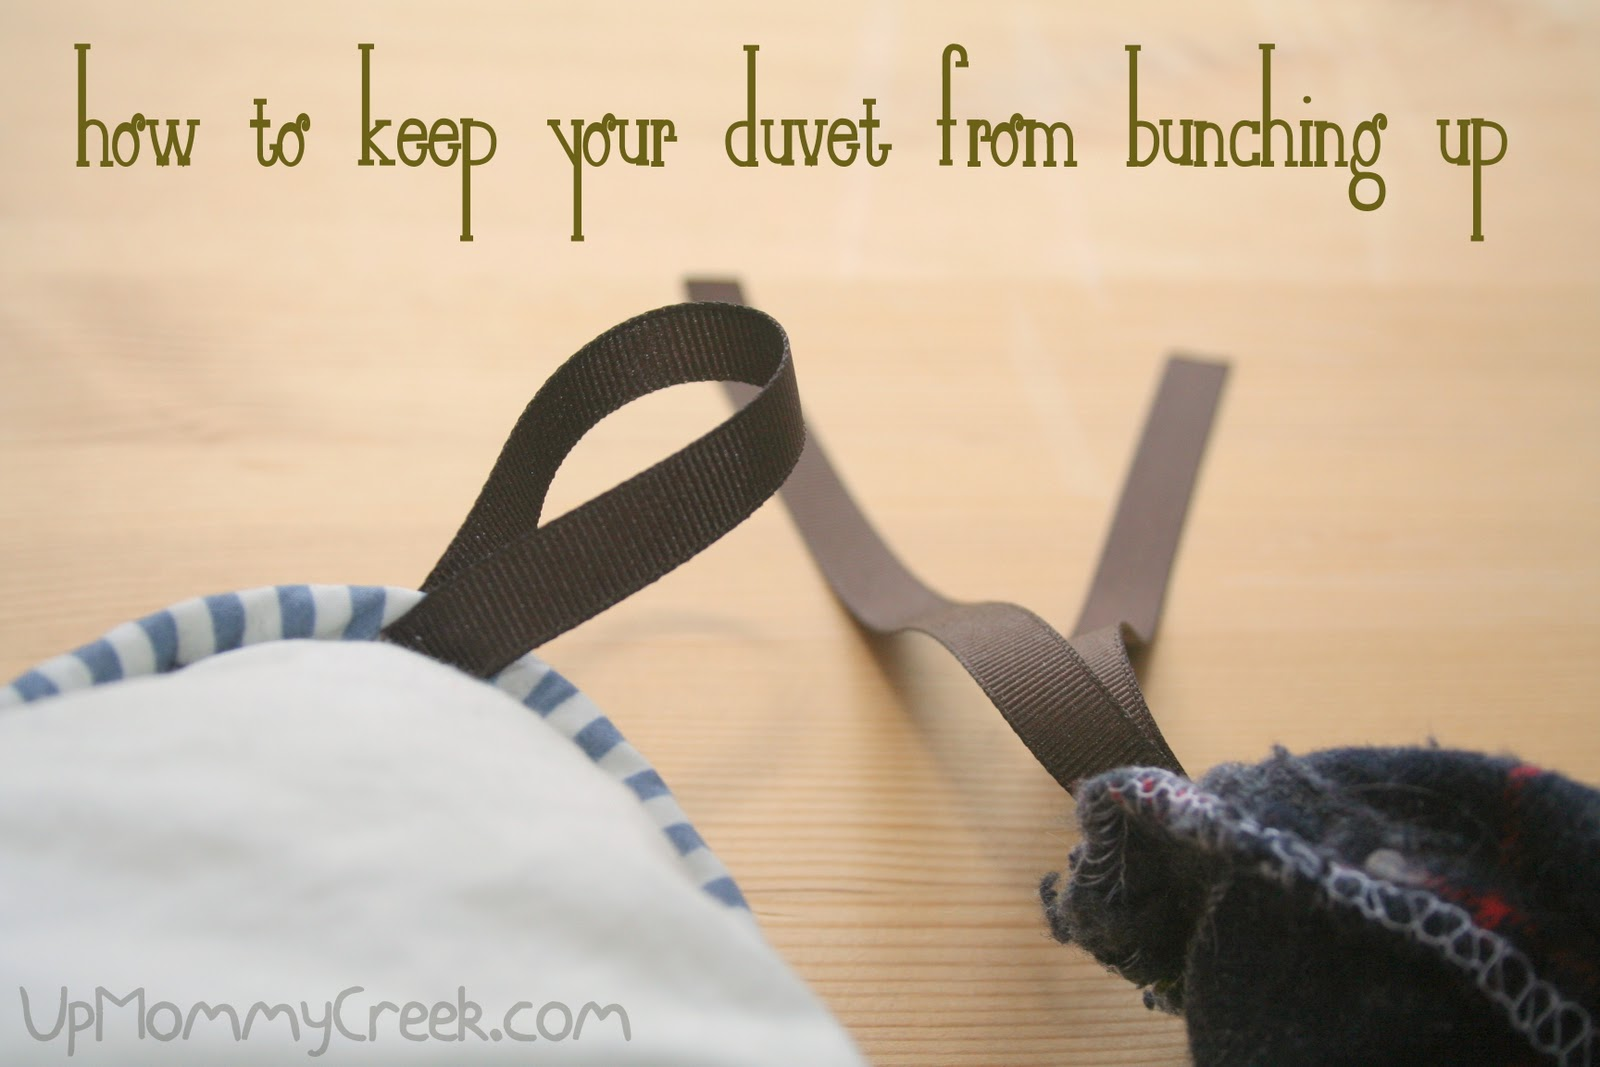 Handy Tip How To Keep Your Duvet From Bunching Up